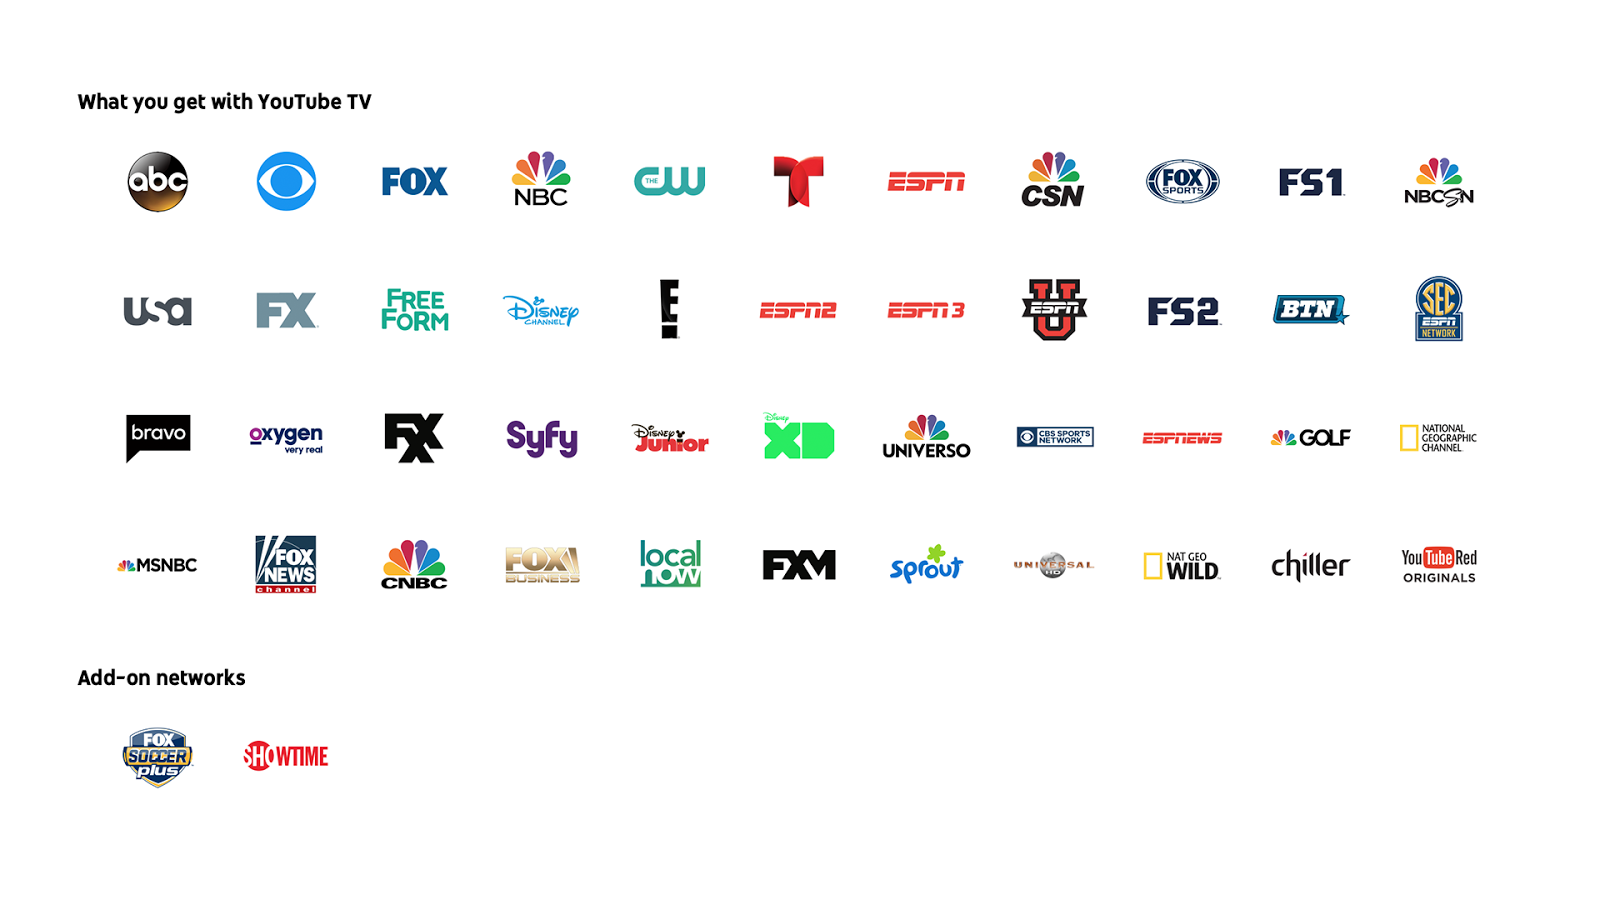 YouTube TV starting channels